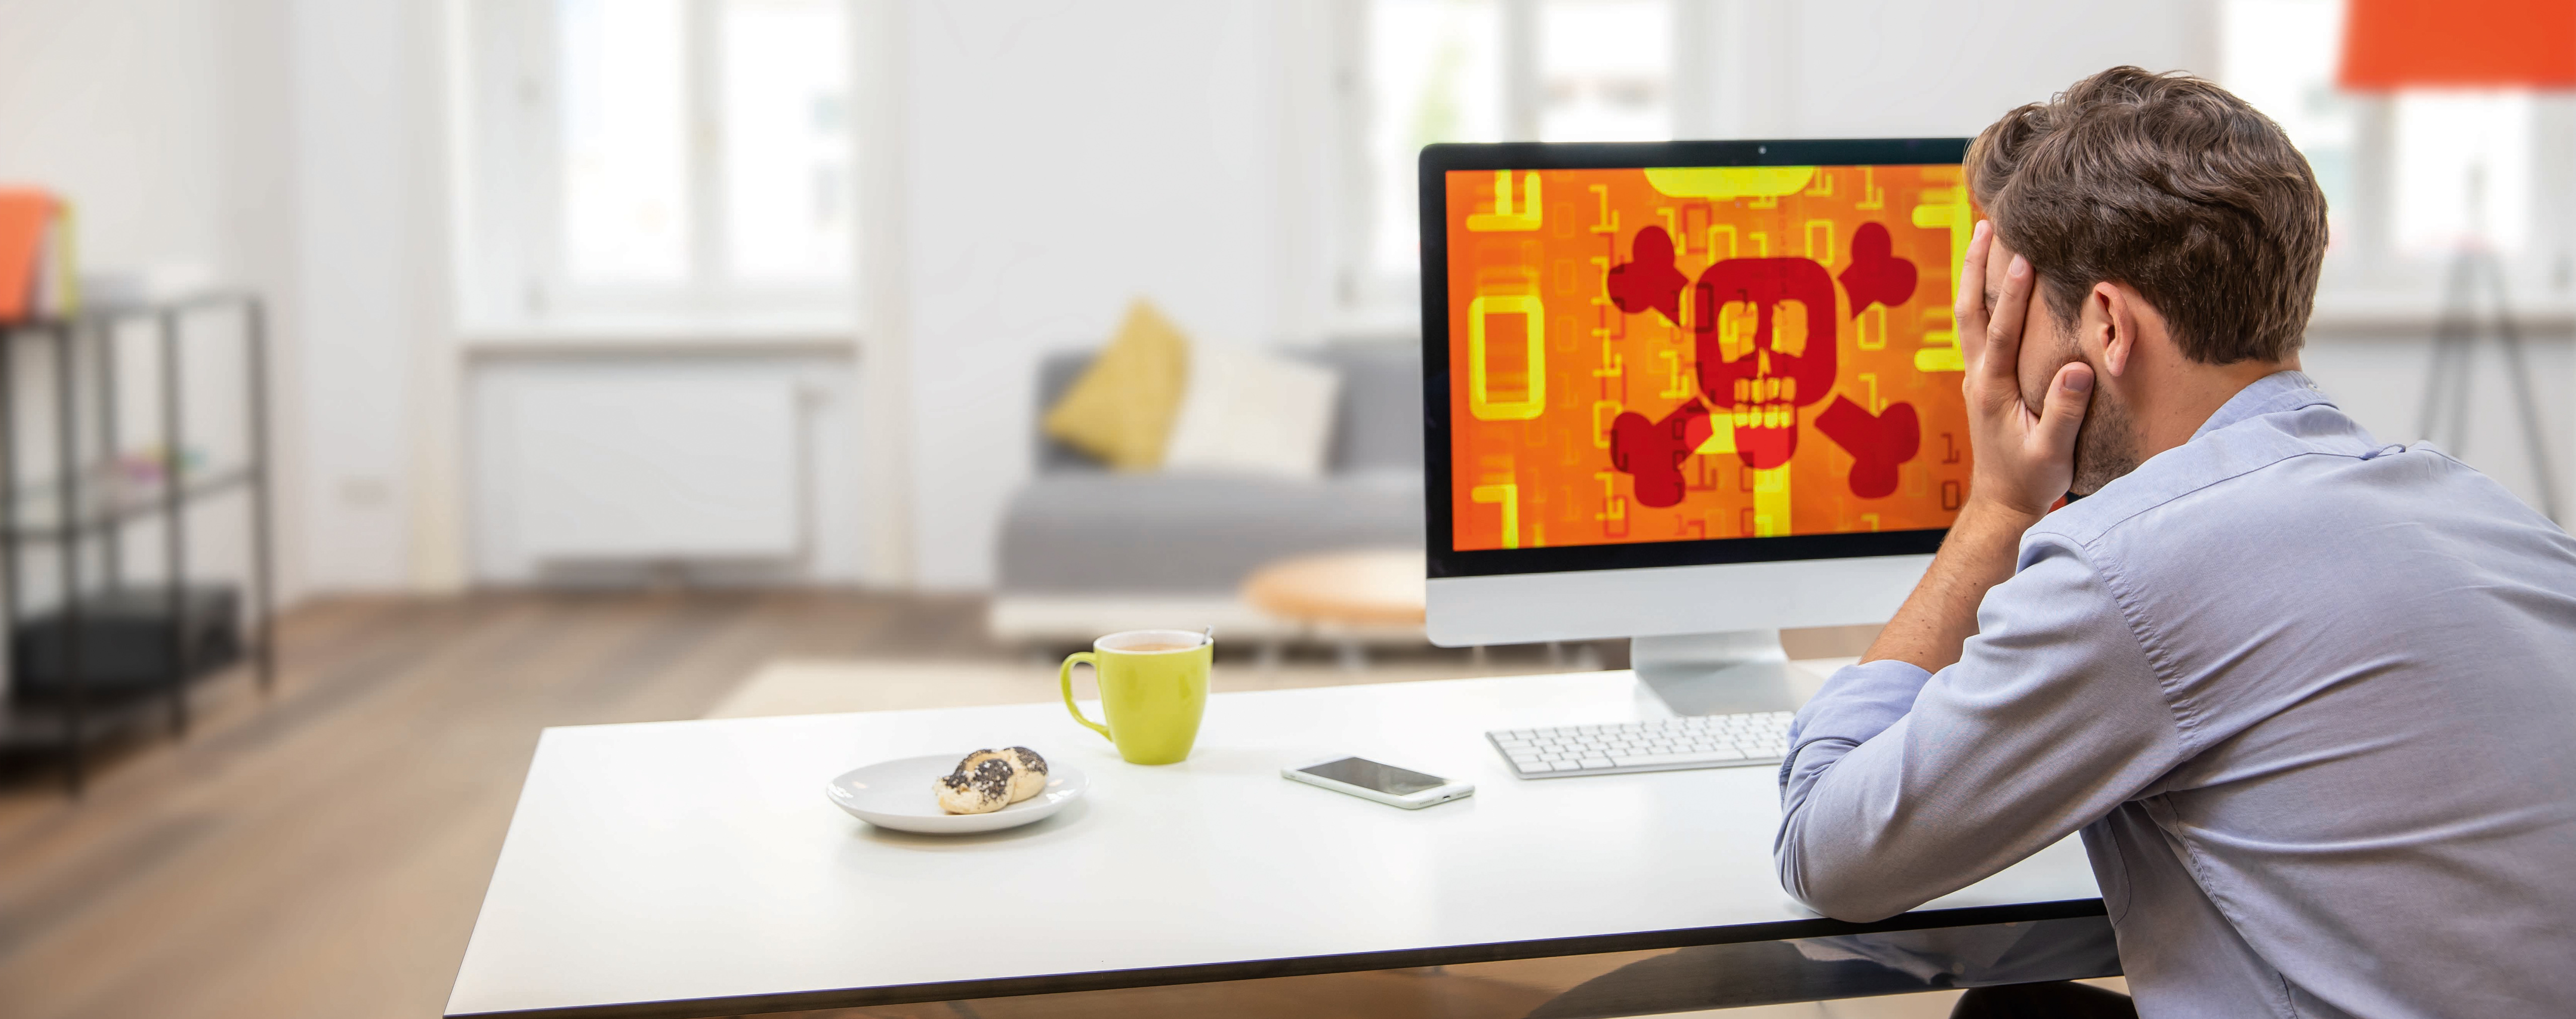 Desperate man sitting in front of a computer screen with a skull on it